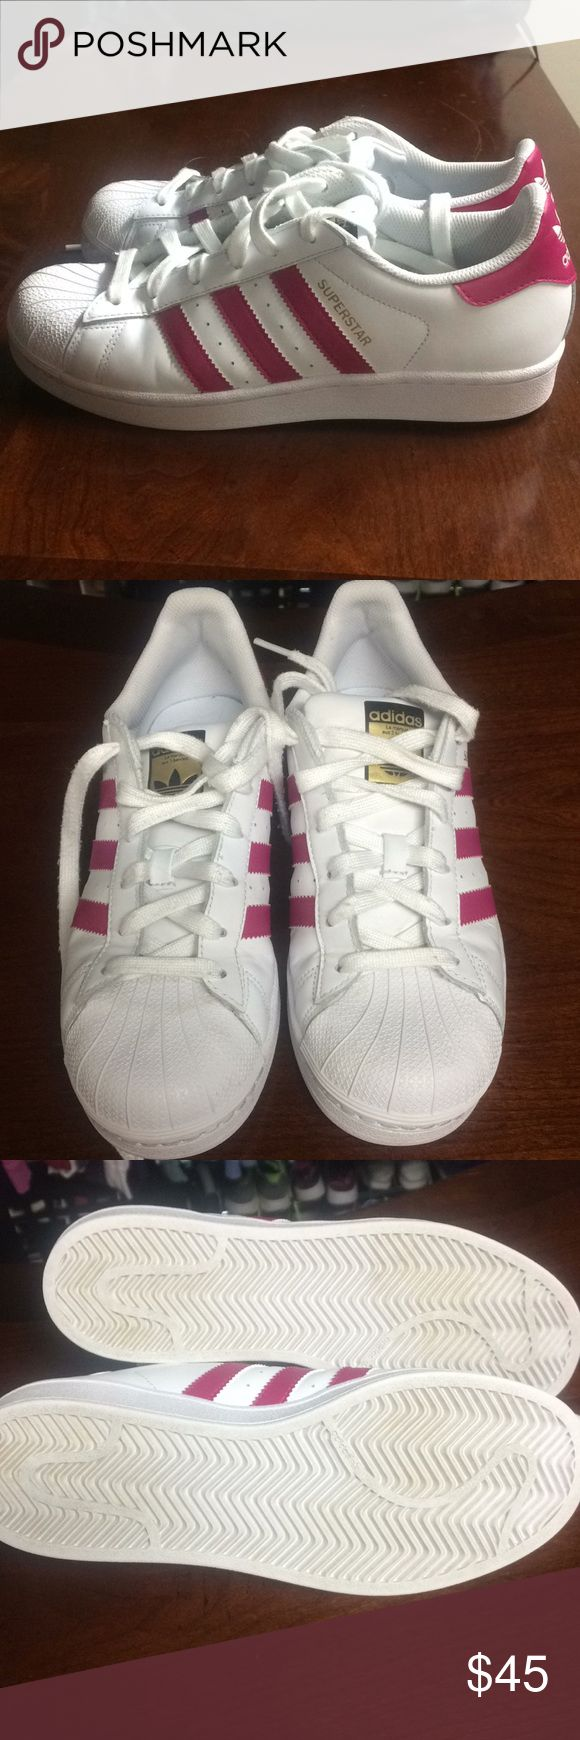 Adidas Superstar athletic shoes Adidas superstar women's size 6.5 worn a few times but still in great condition white with hot pink stripes adidas Shoes Athletic Shoes